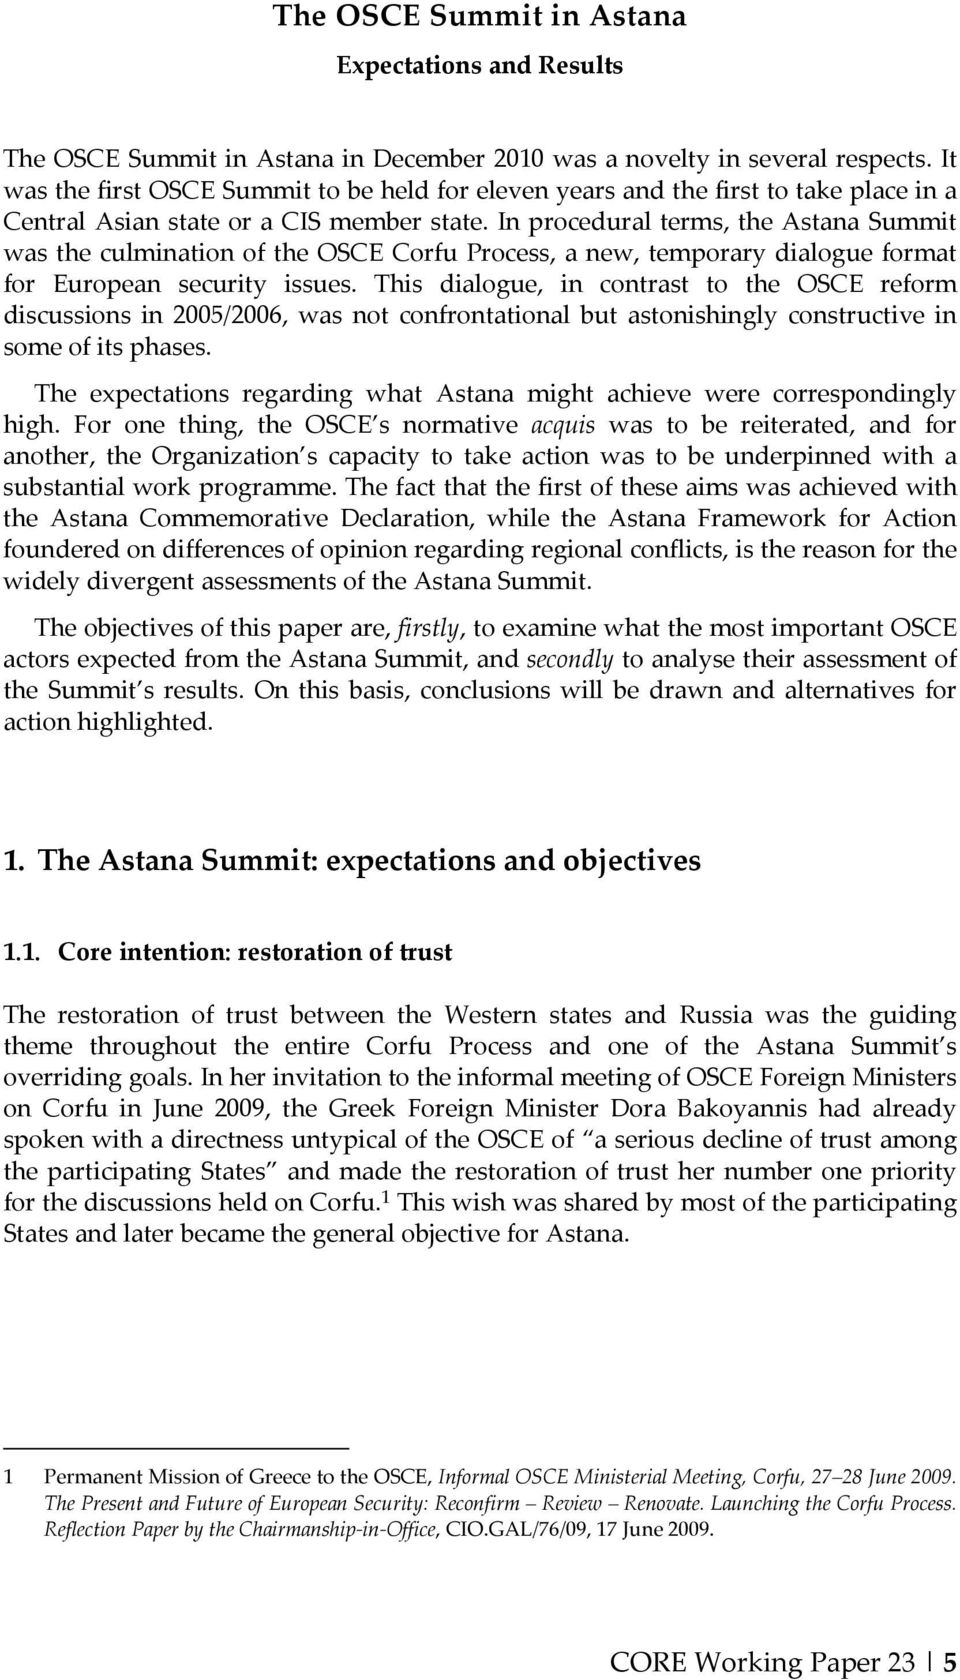 In procedural terms, the Astana Summit was the culmination of the OSCE Corfu Process, a new, temporary dialogue format for European security issues.